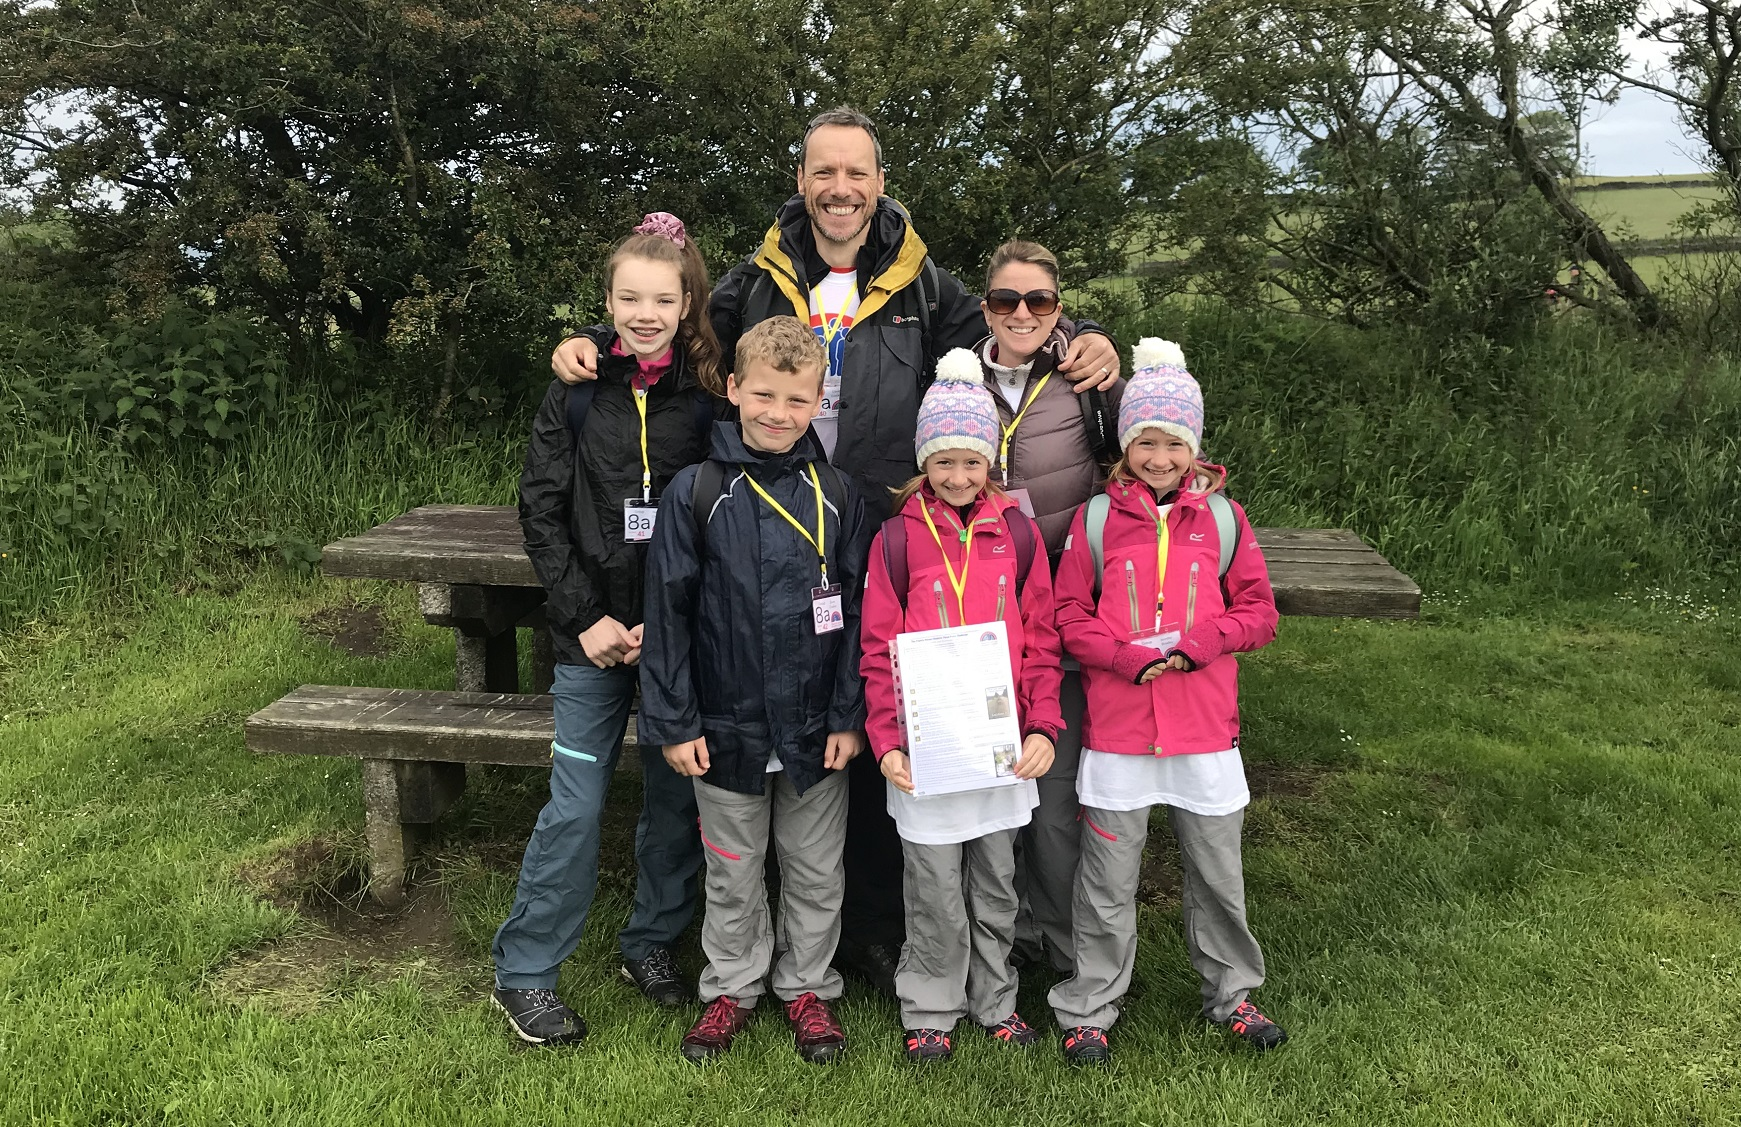 David Crookes and family line up for Cheshire Three Peaks